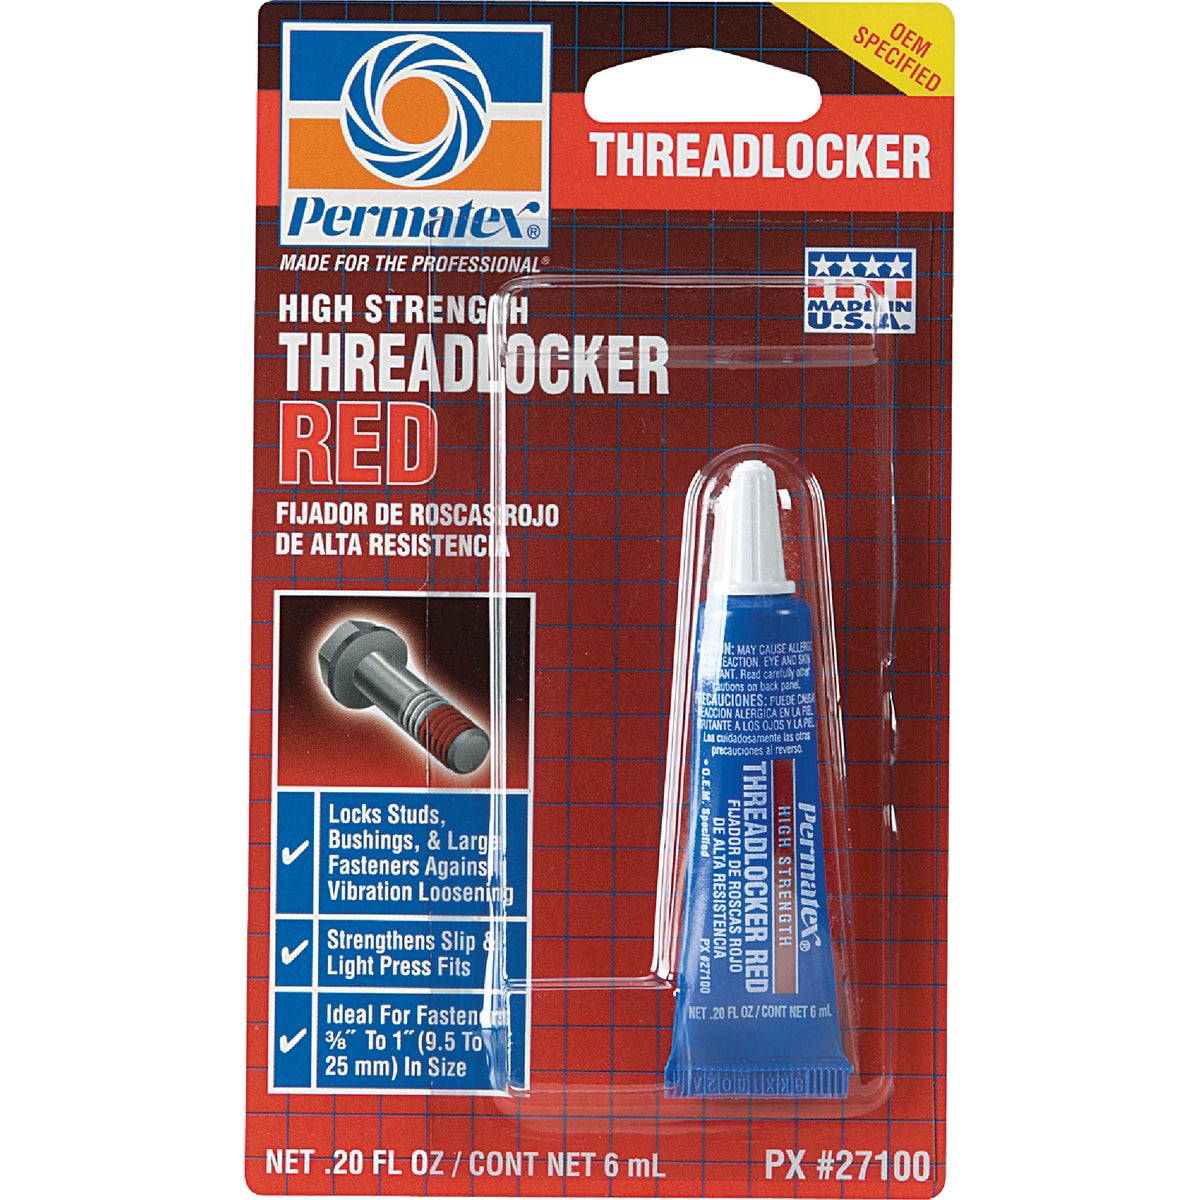 6ML THREADLOCKER - 27100 by Itw Global Brands